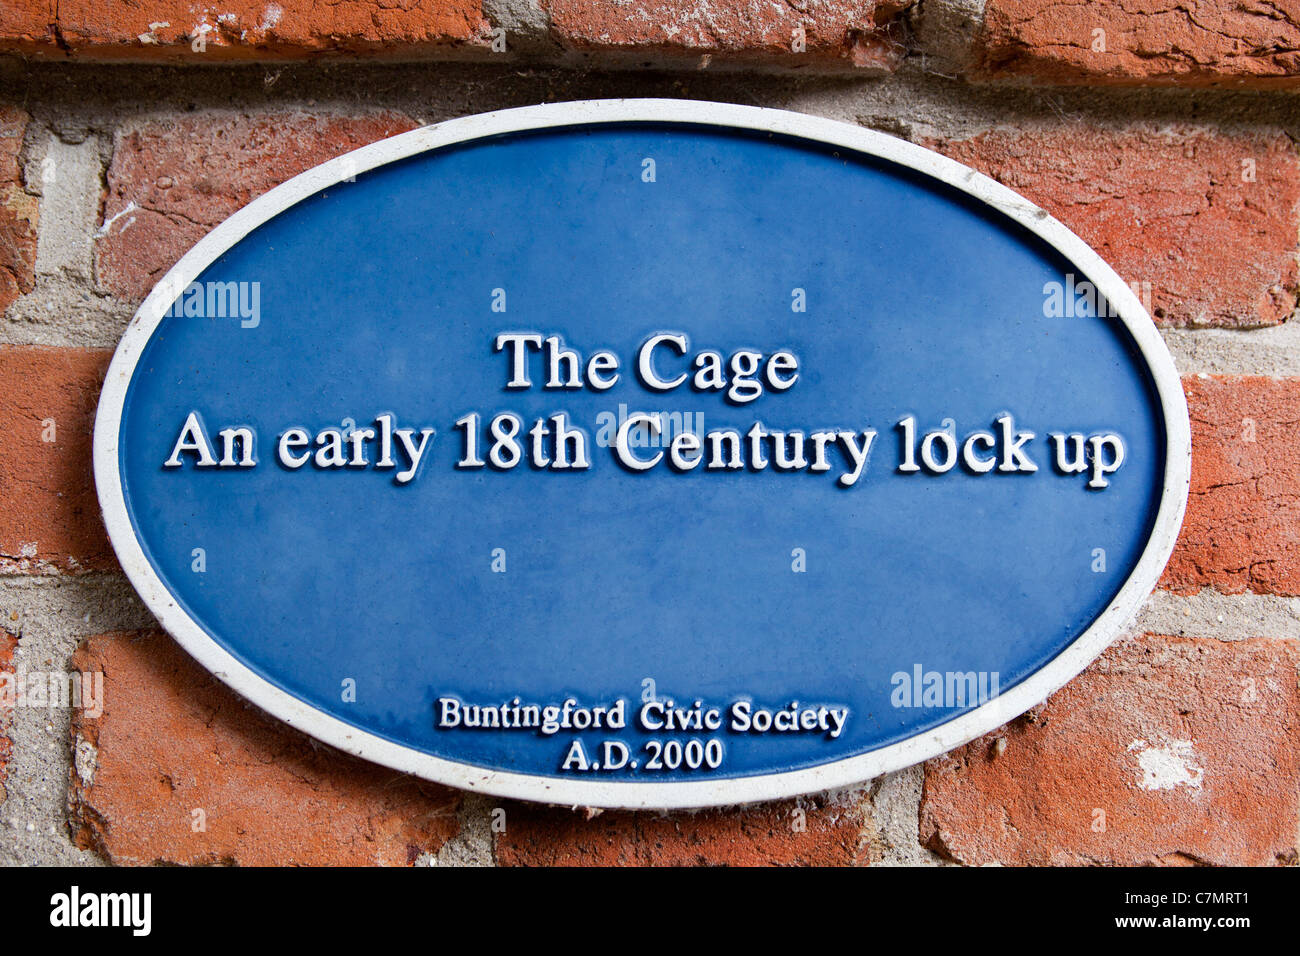 The Old Lock up or Cage Buntingford - Stock Image